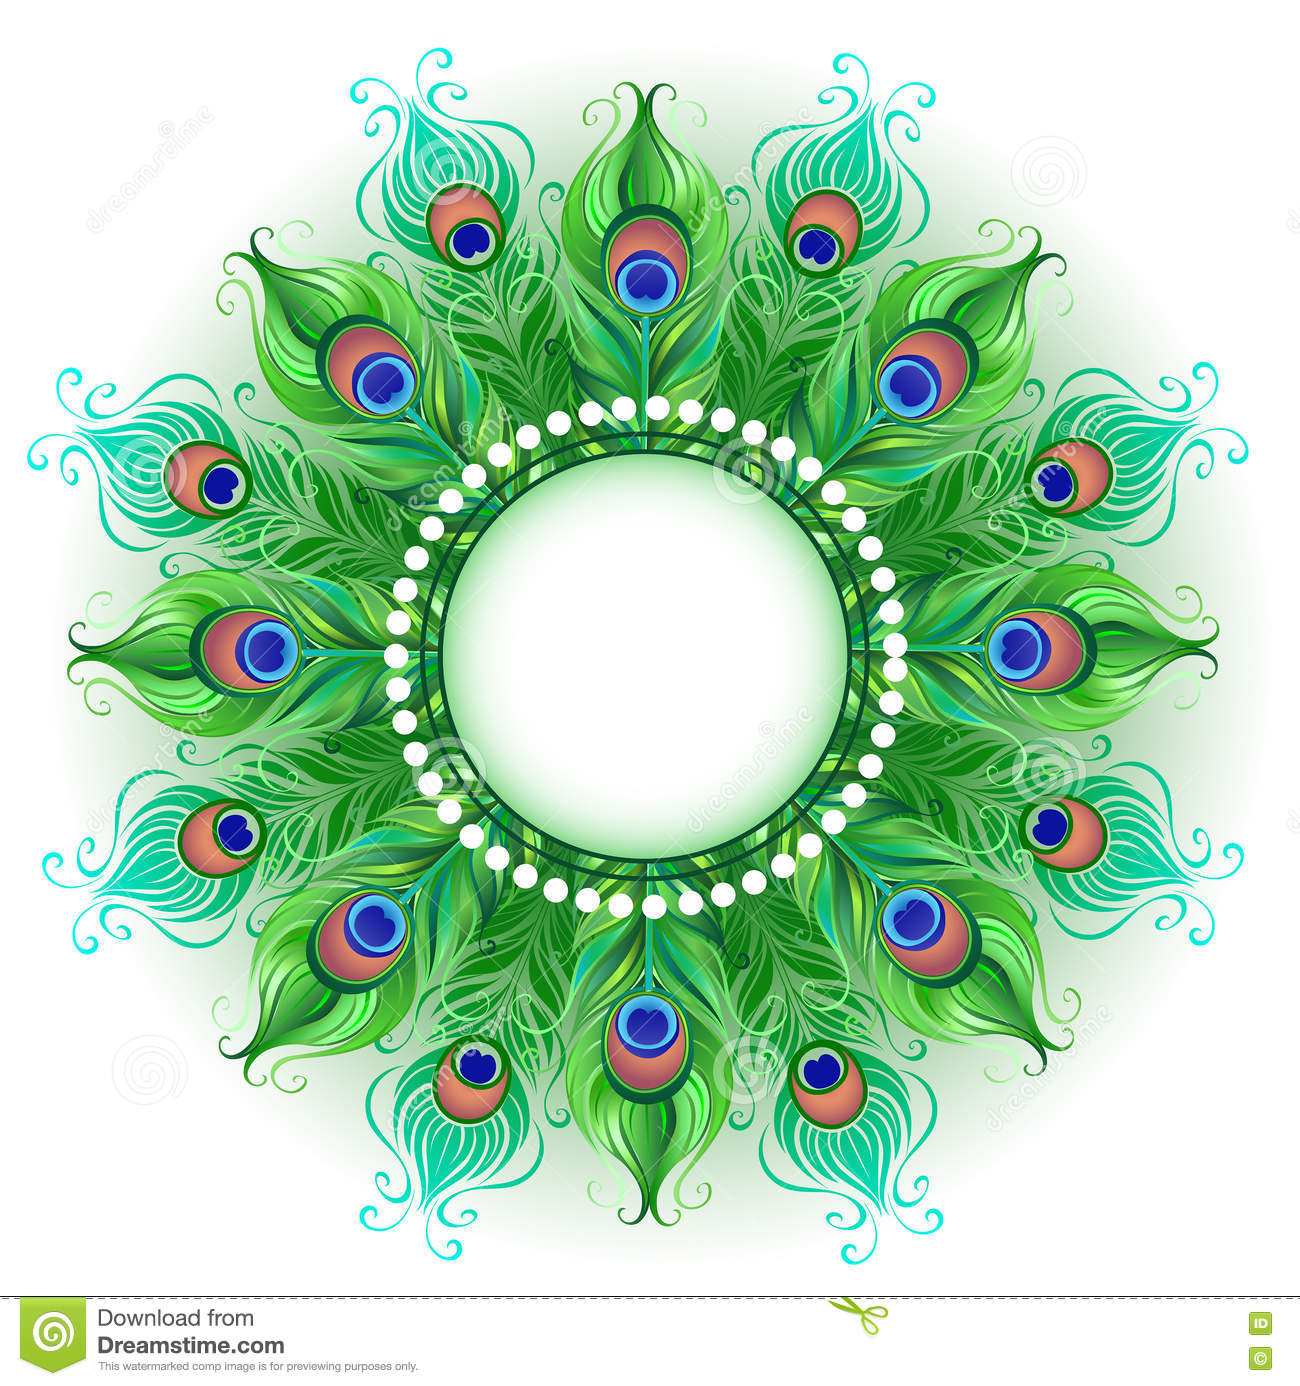 free vector green boho - photo #42